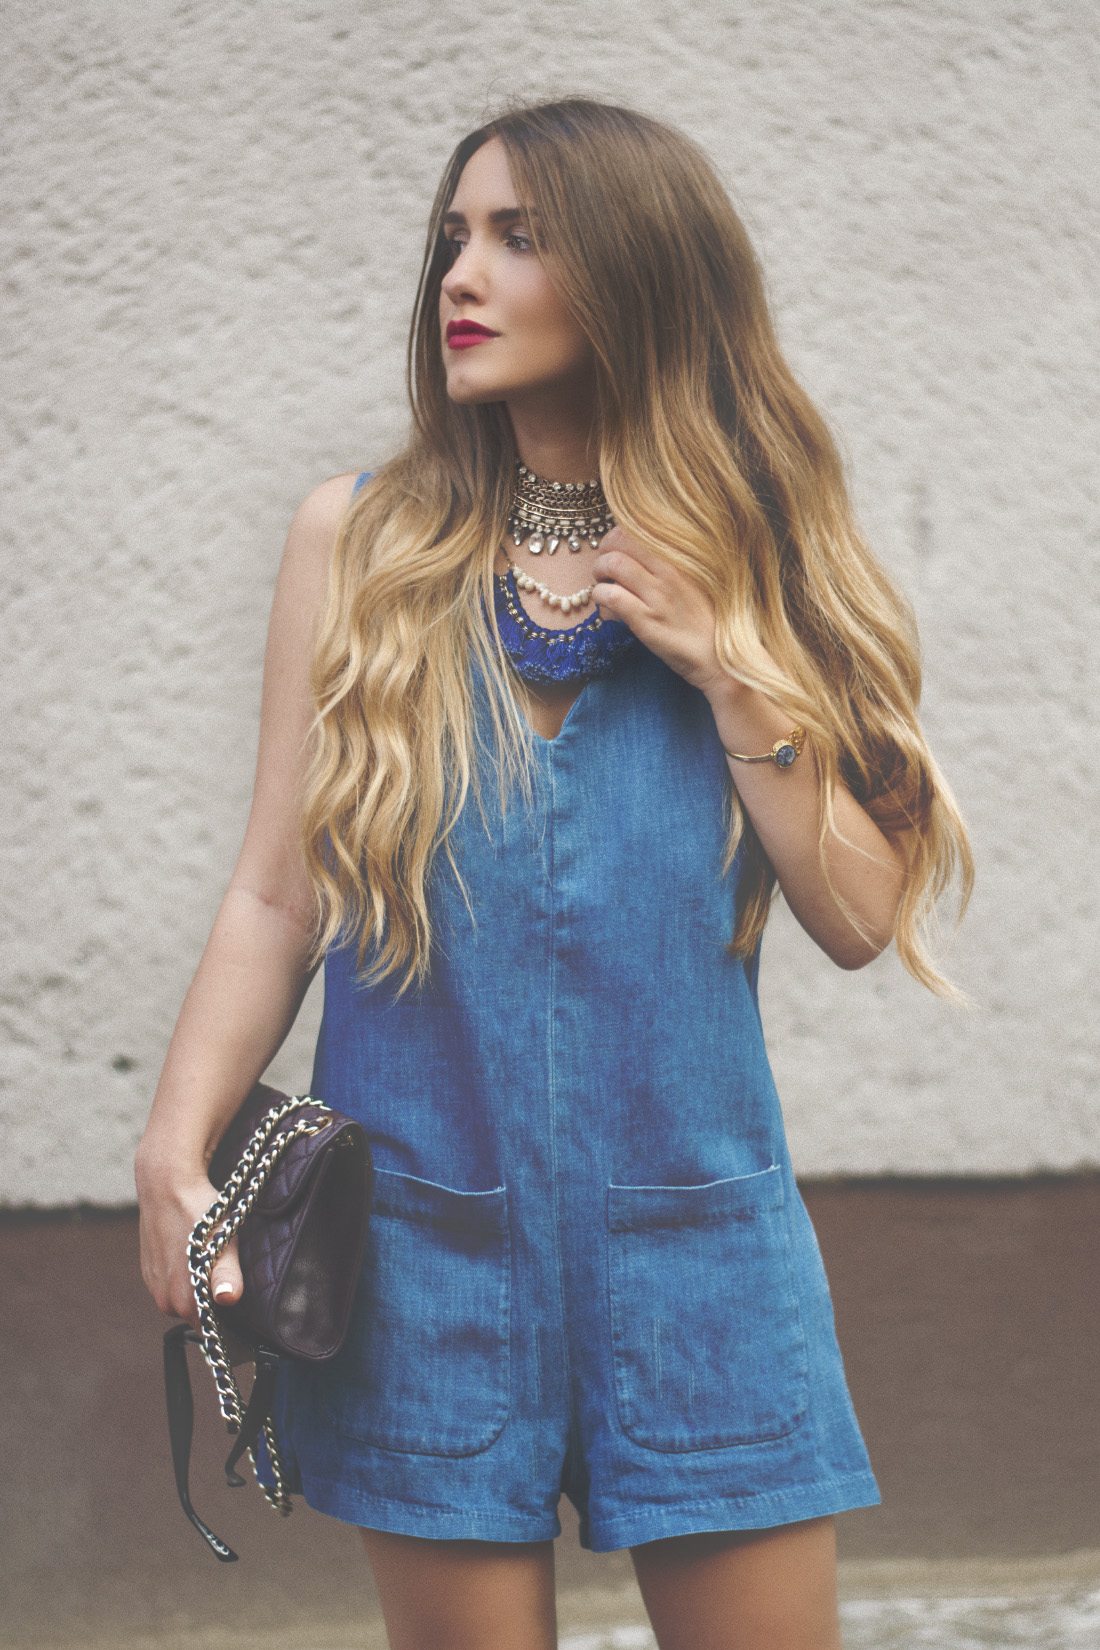 Streetstyle Fashion Week 2015 - Denim Jumpsuit